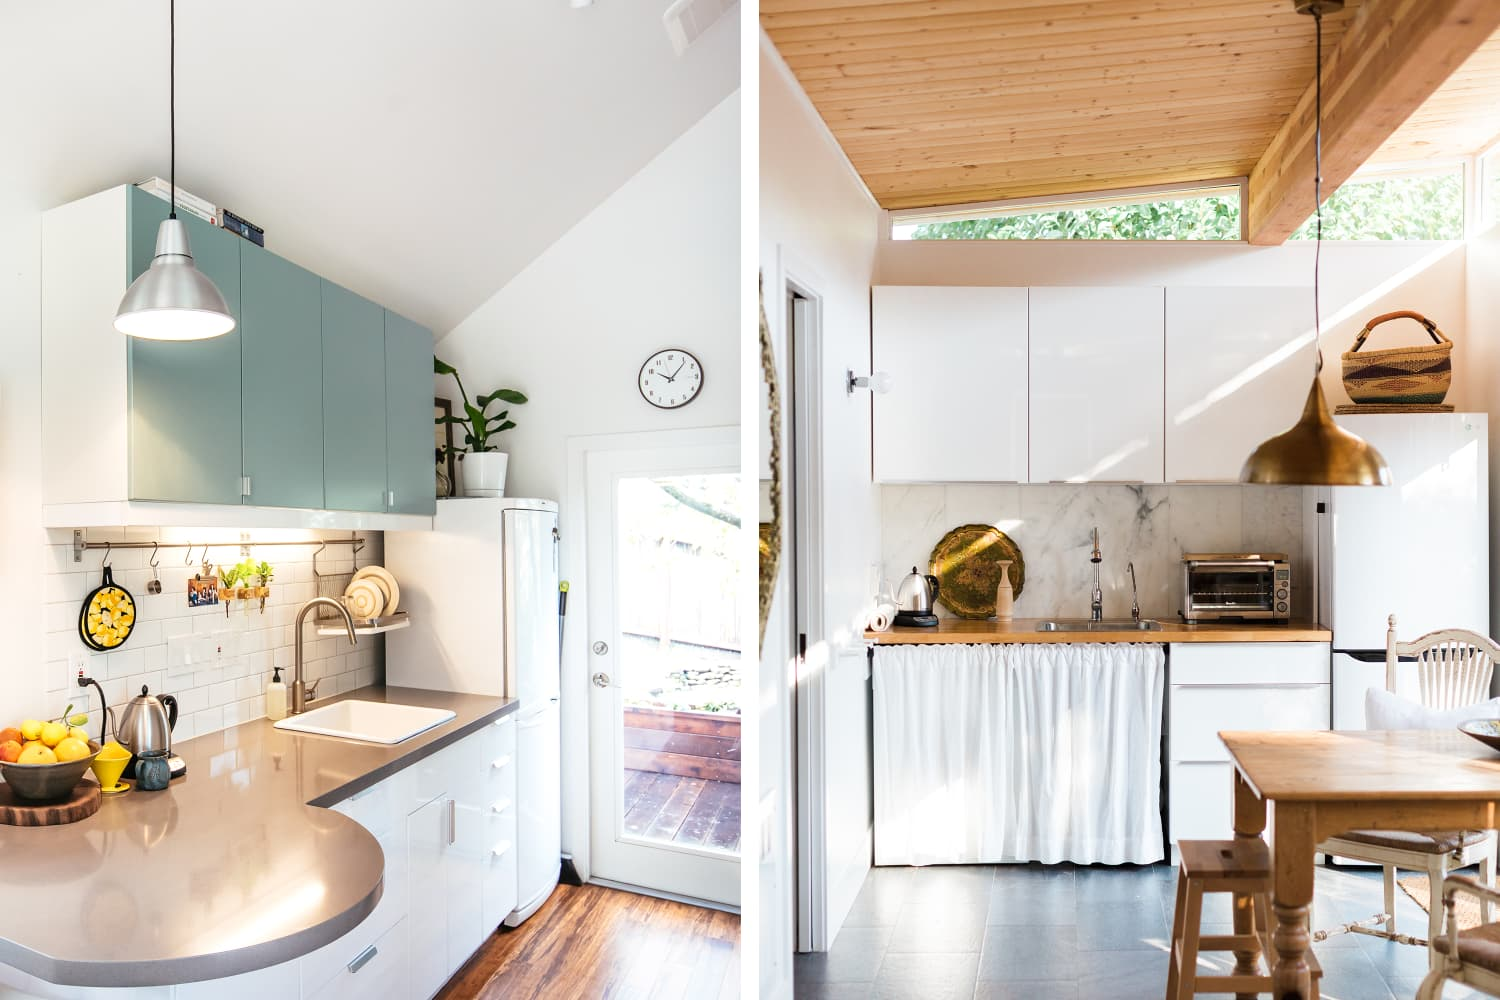 10 of the Most Popular Tiny Kitchens from Our Friends at Apartment Therapy